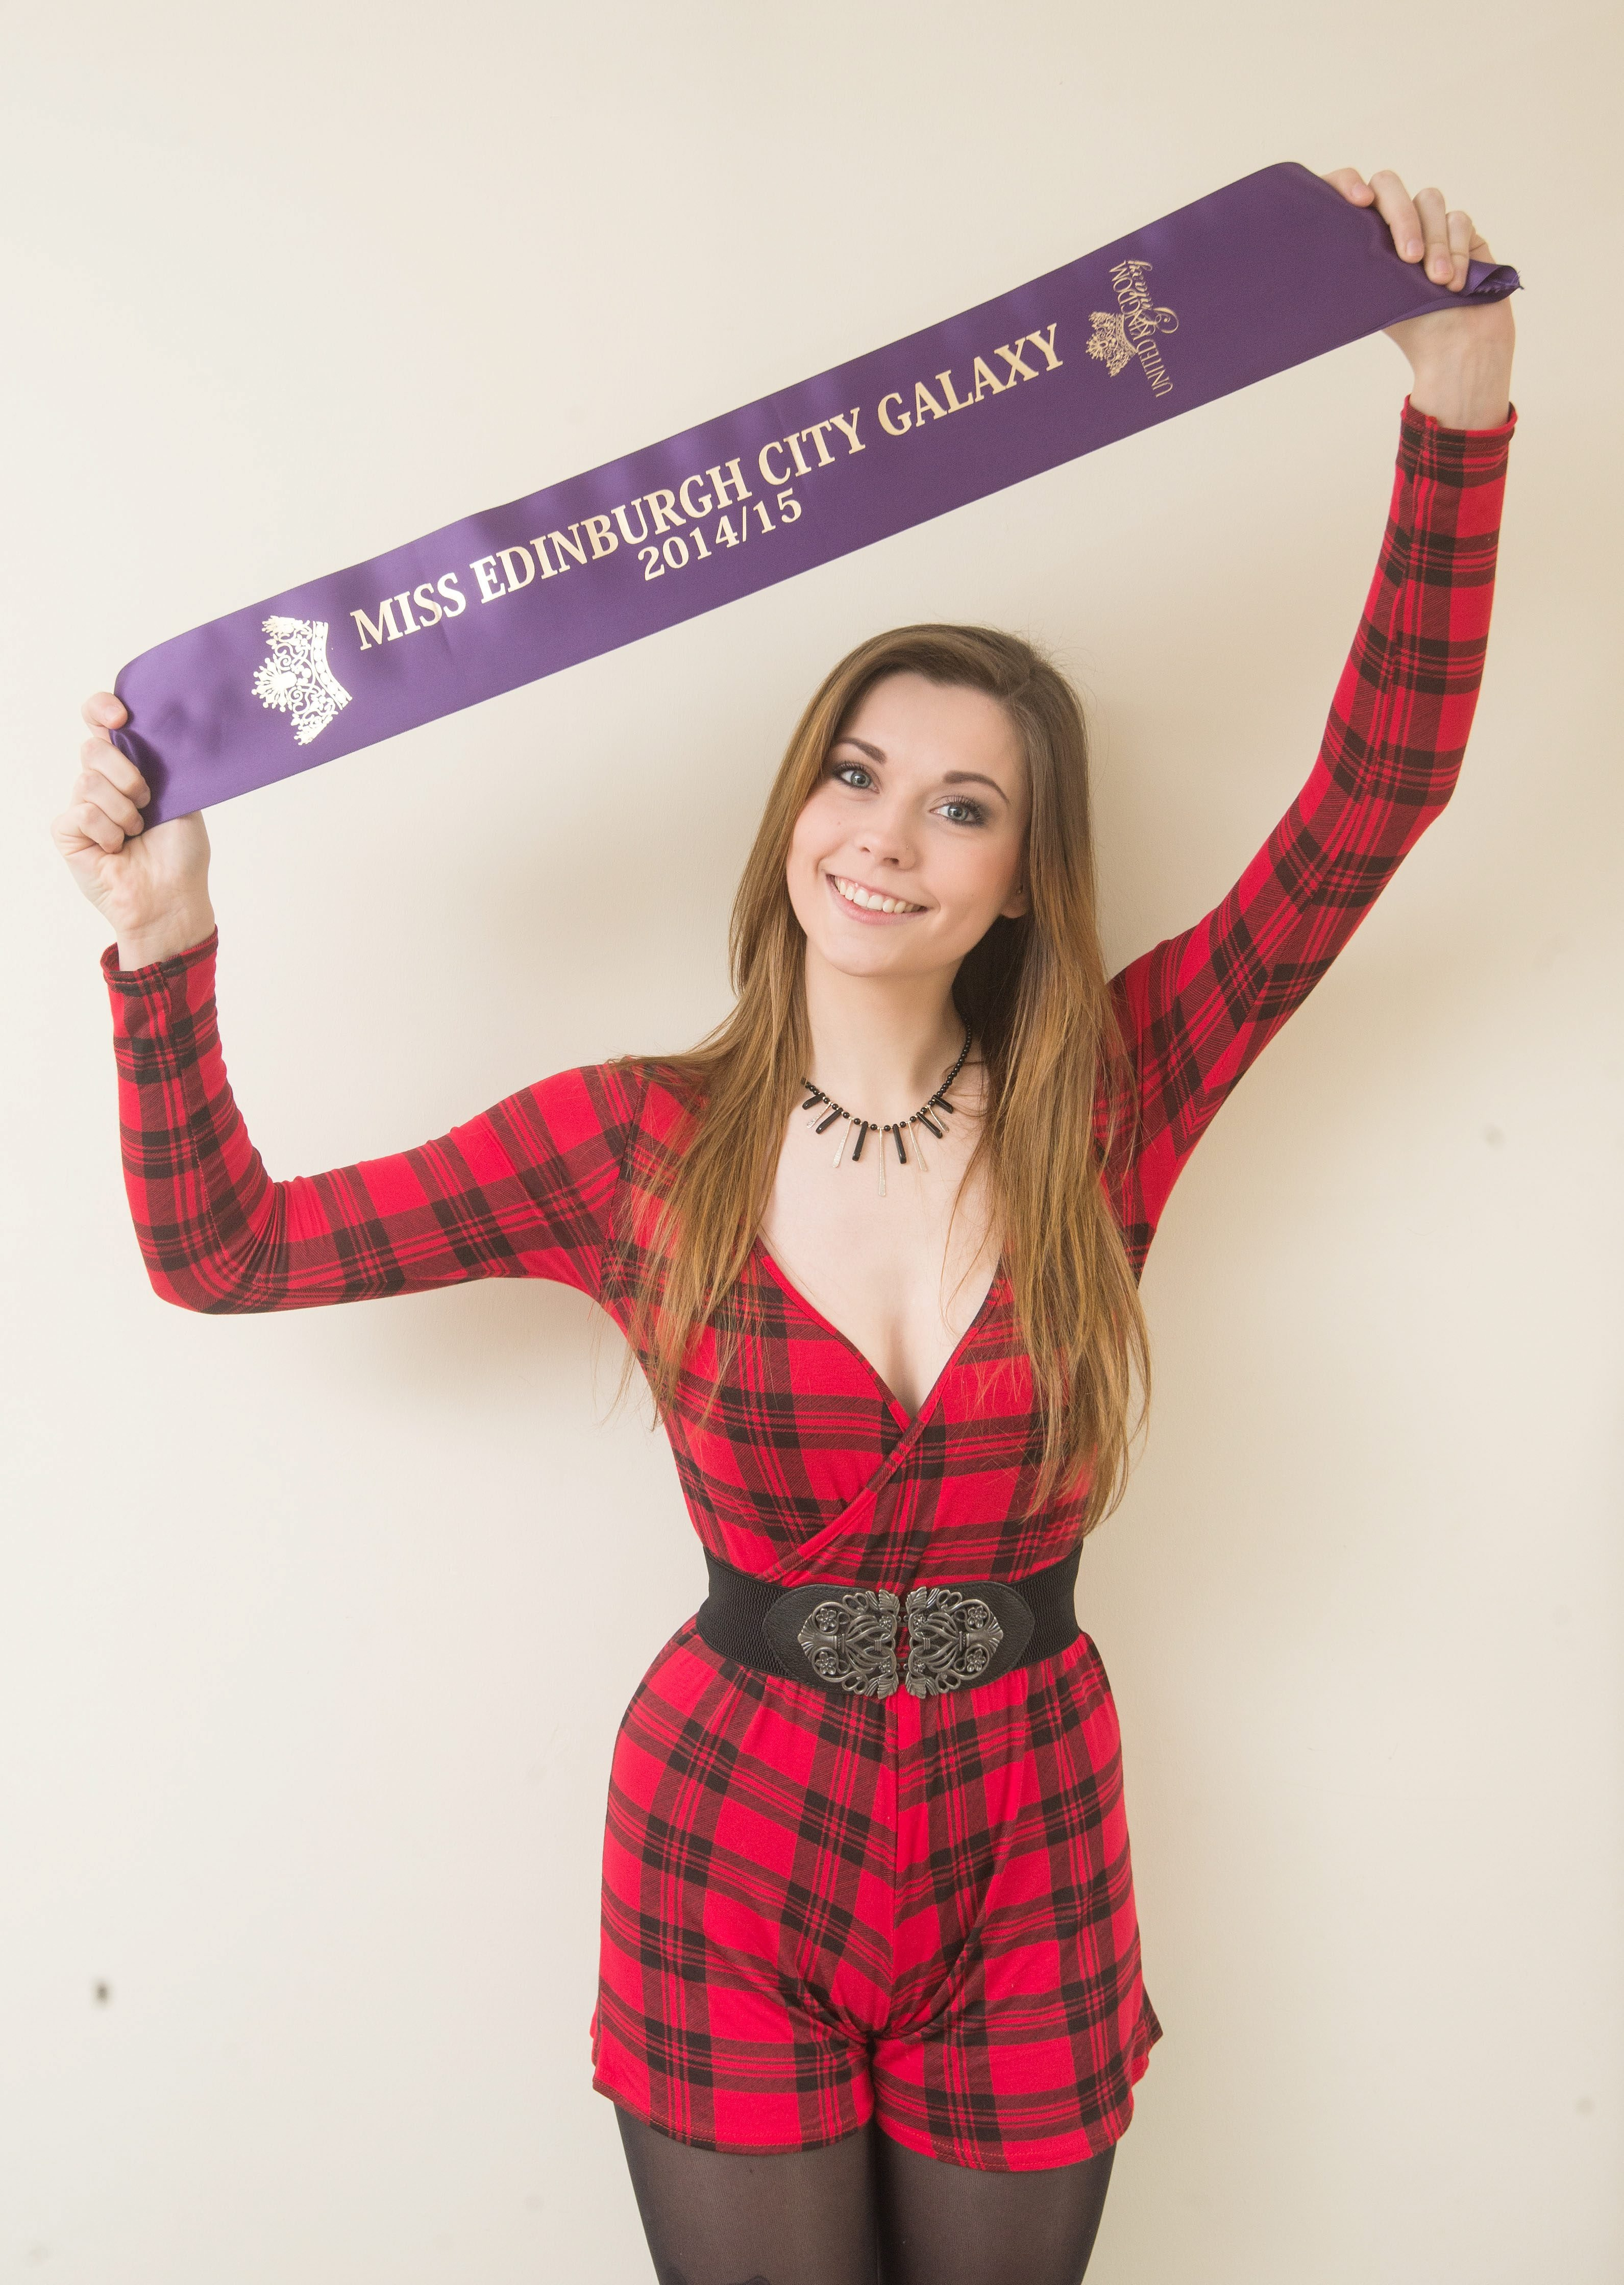 Miss Edinburgh City Galaxy  winner - Lana Elaine Fraser